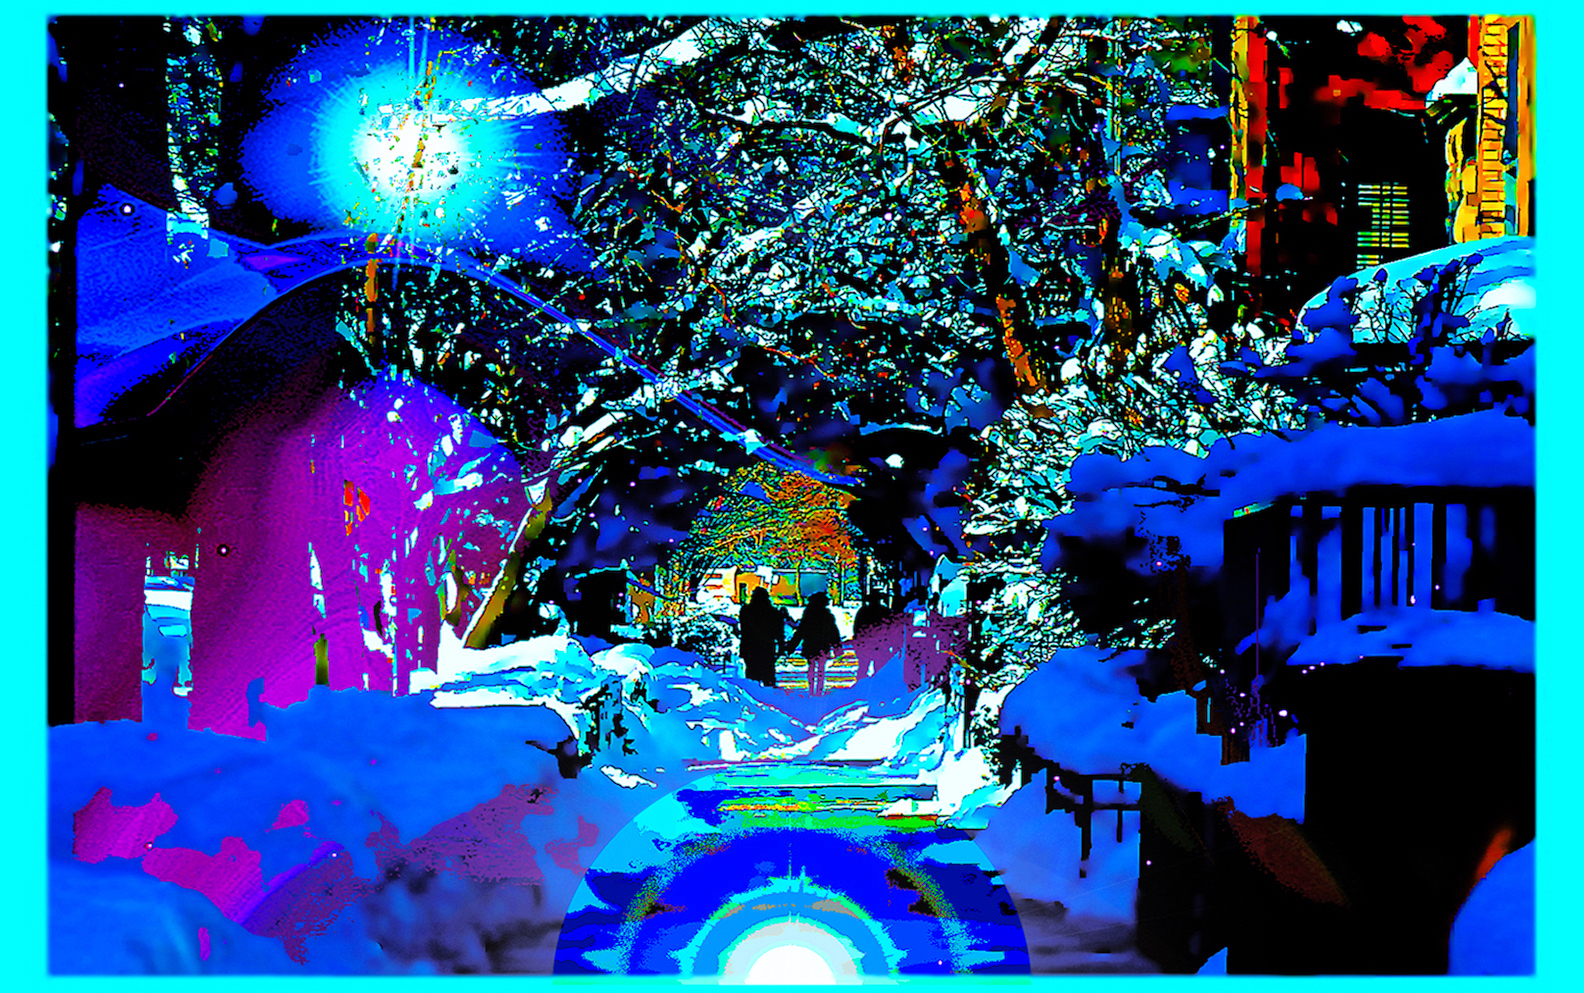 2 Colorful Winter Images (1)